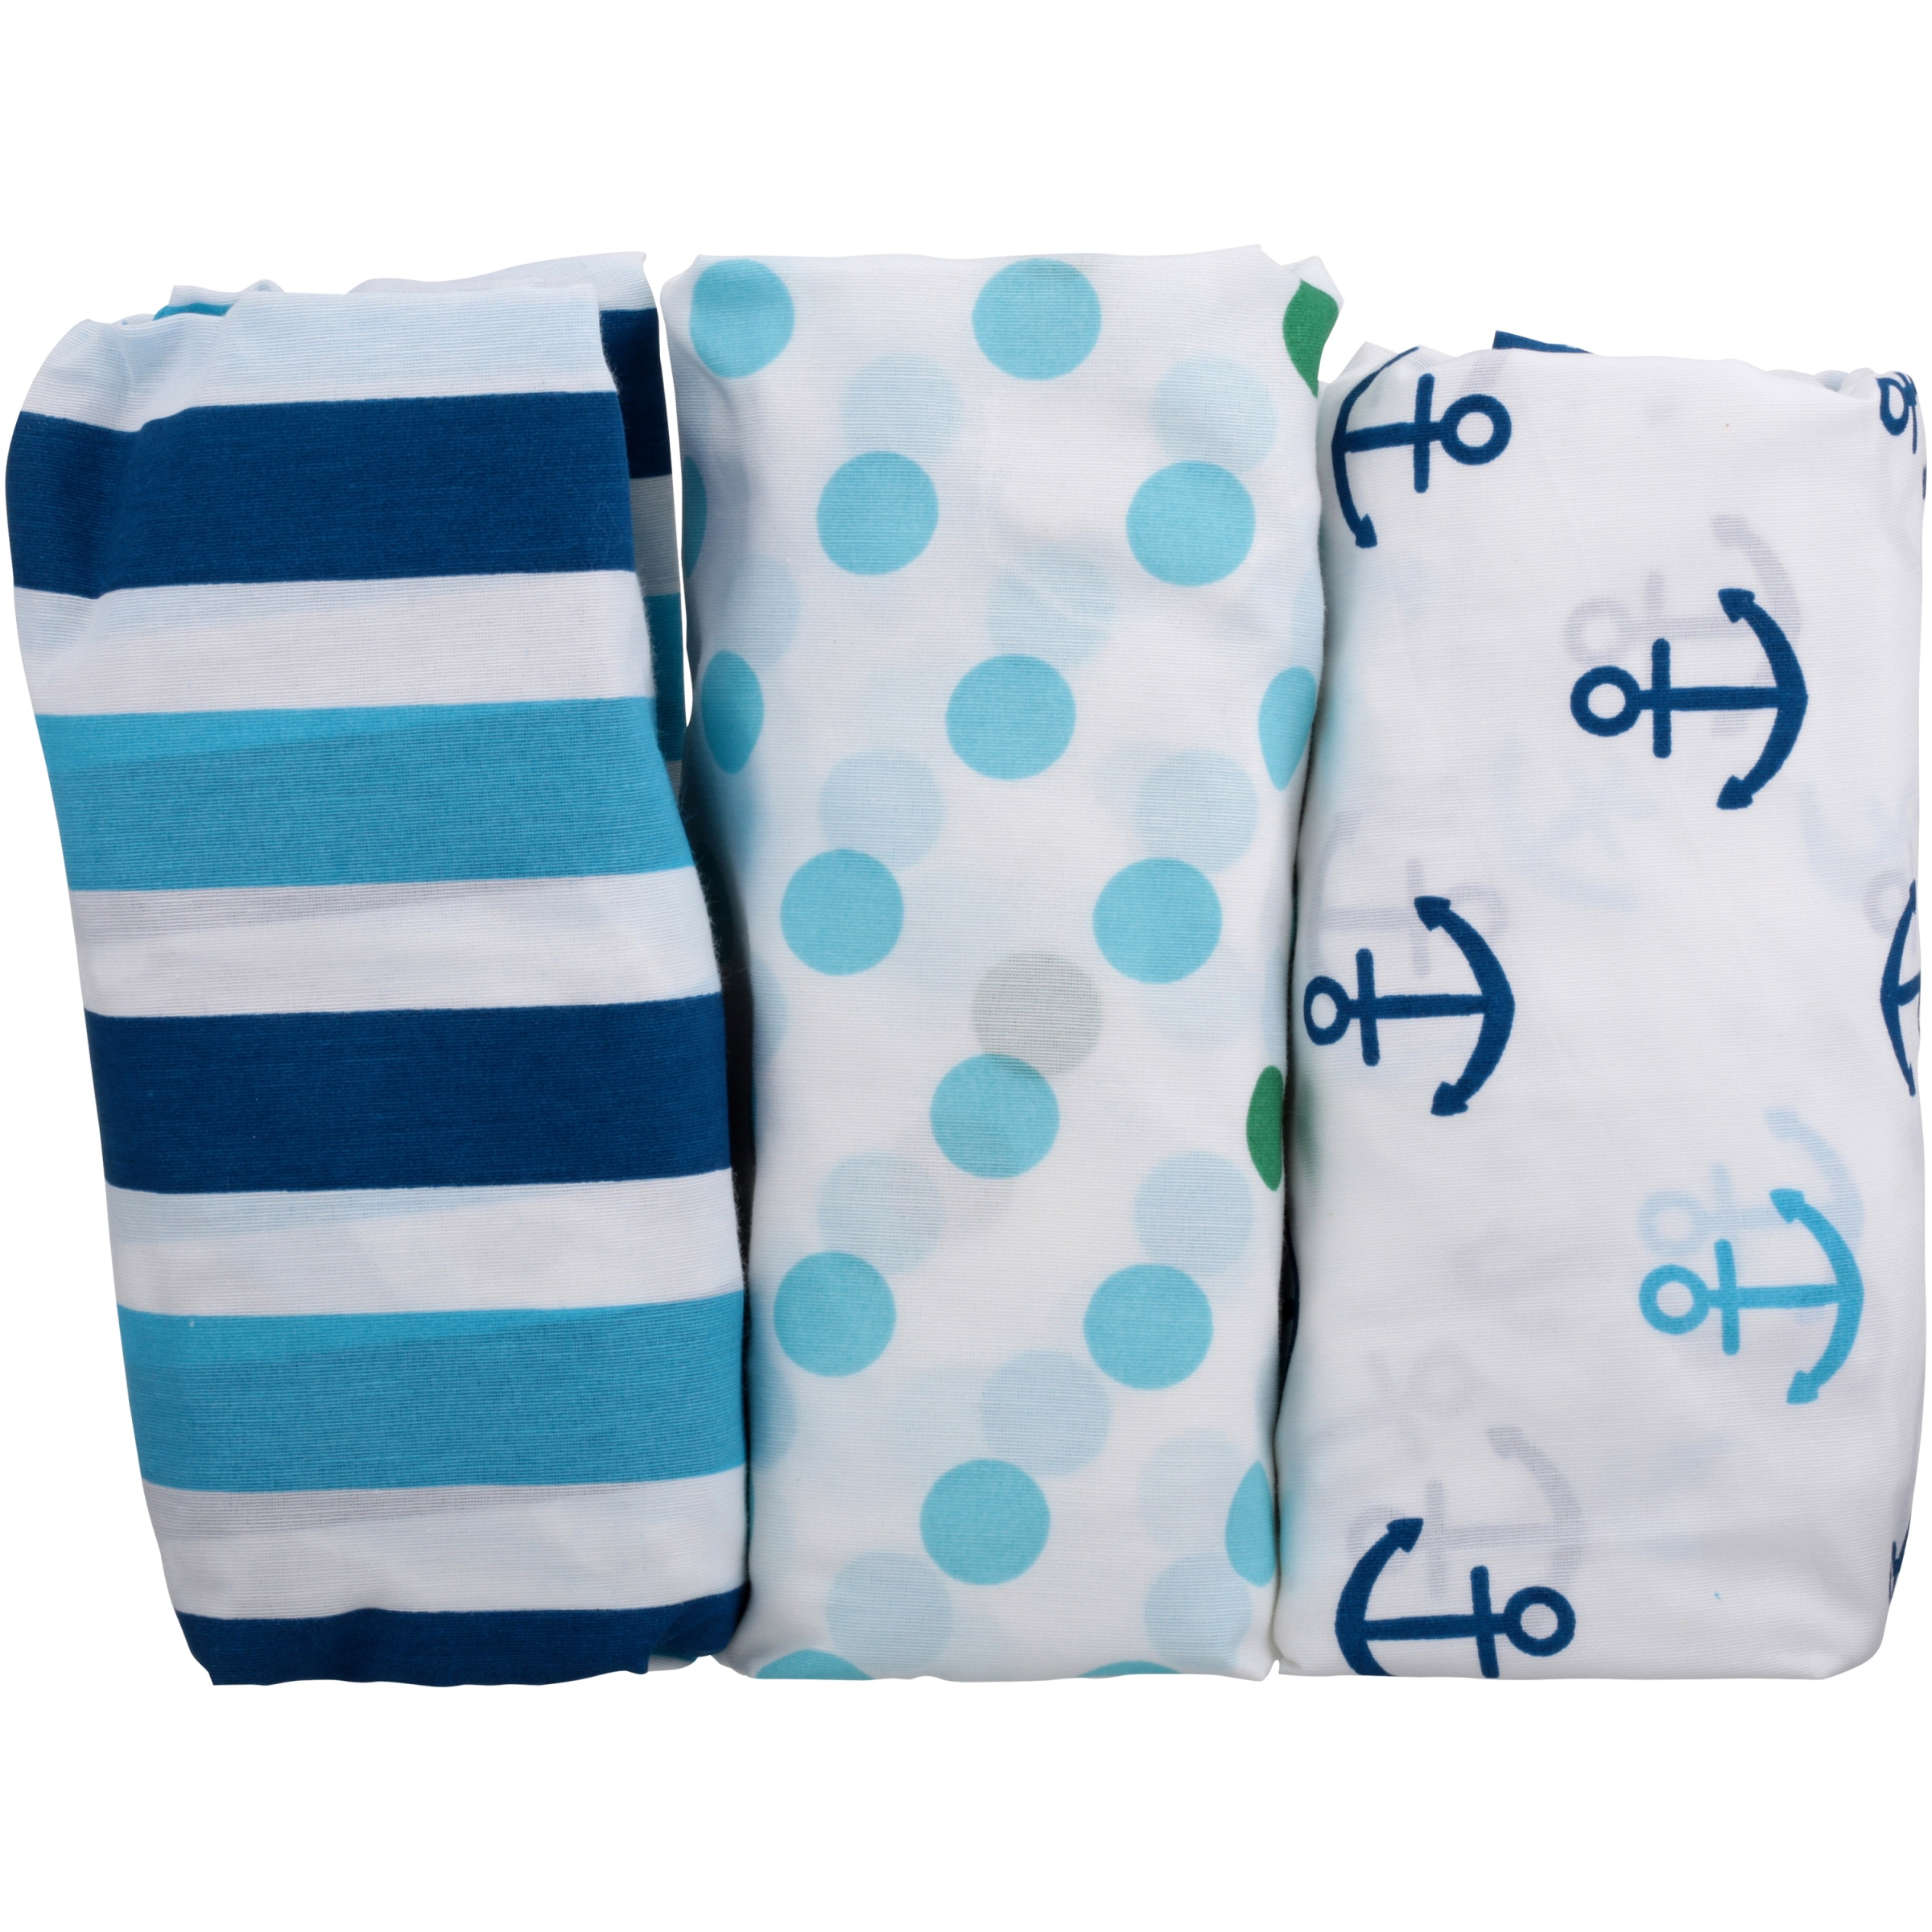 Little Bedding Splish Splash Crib Fitted Sheet Set 3 ct Pack